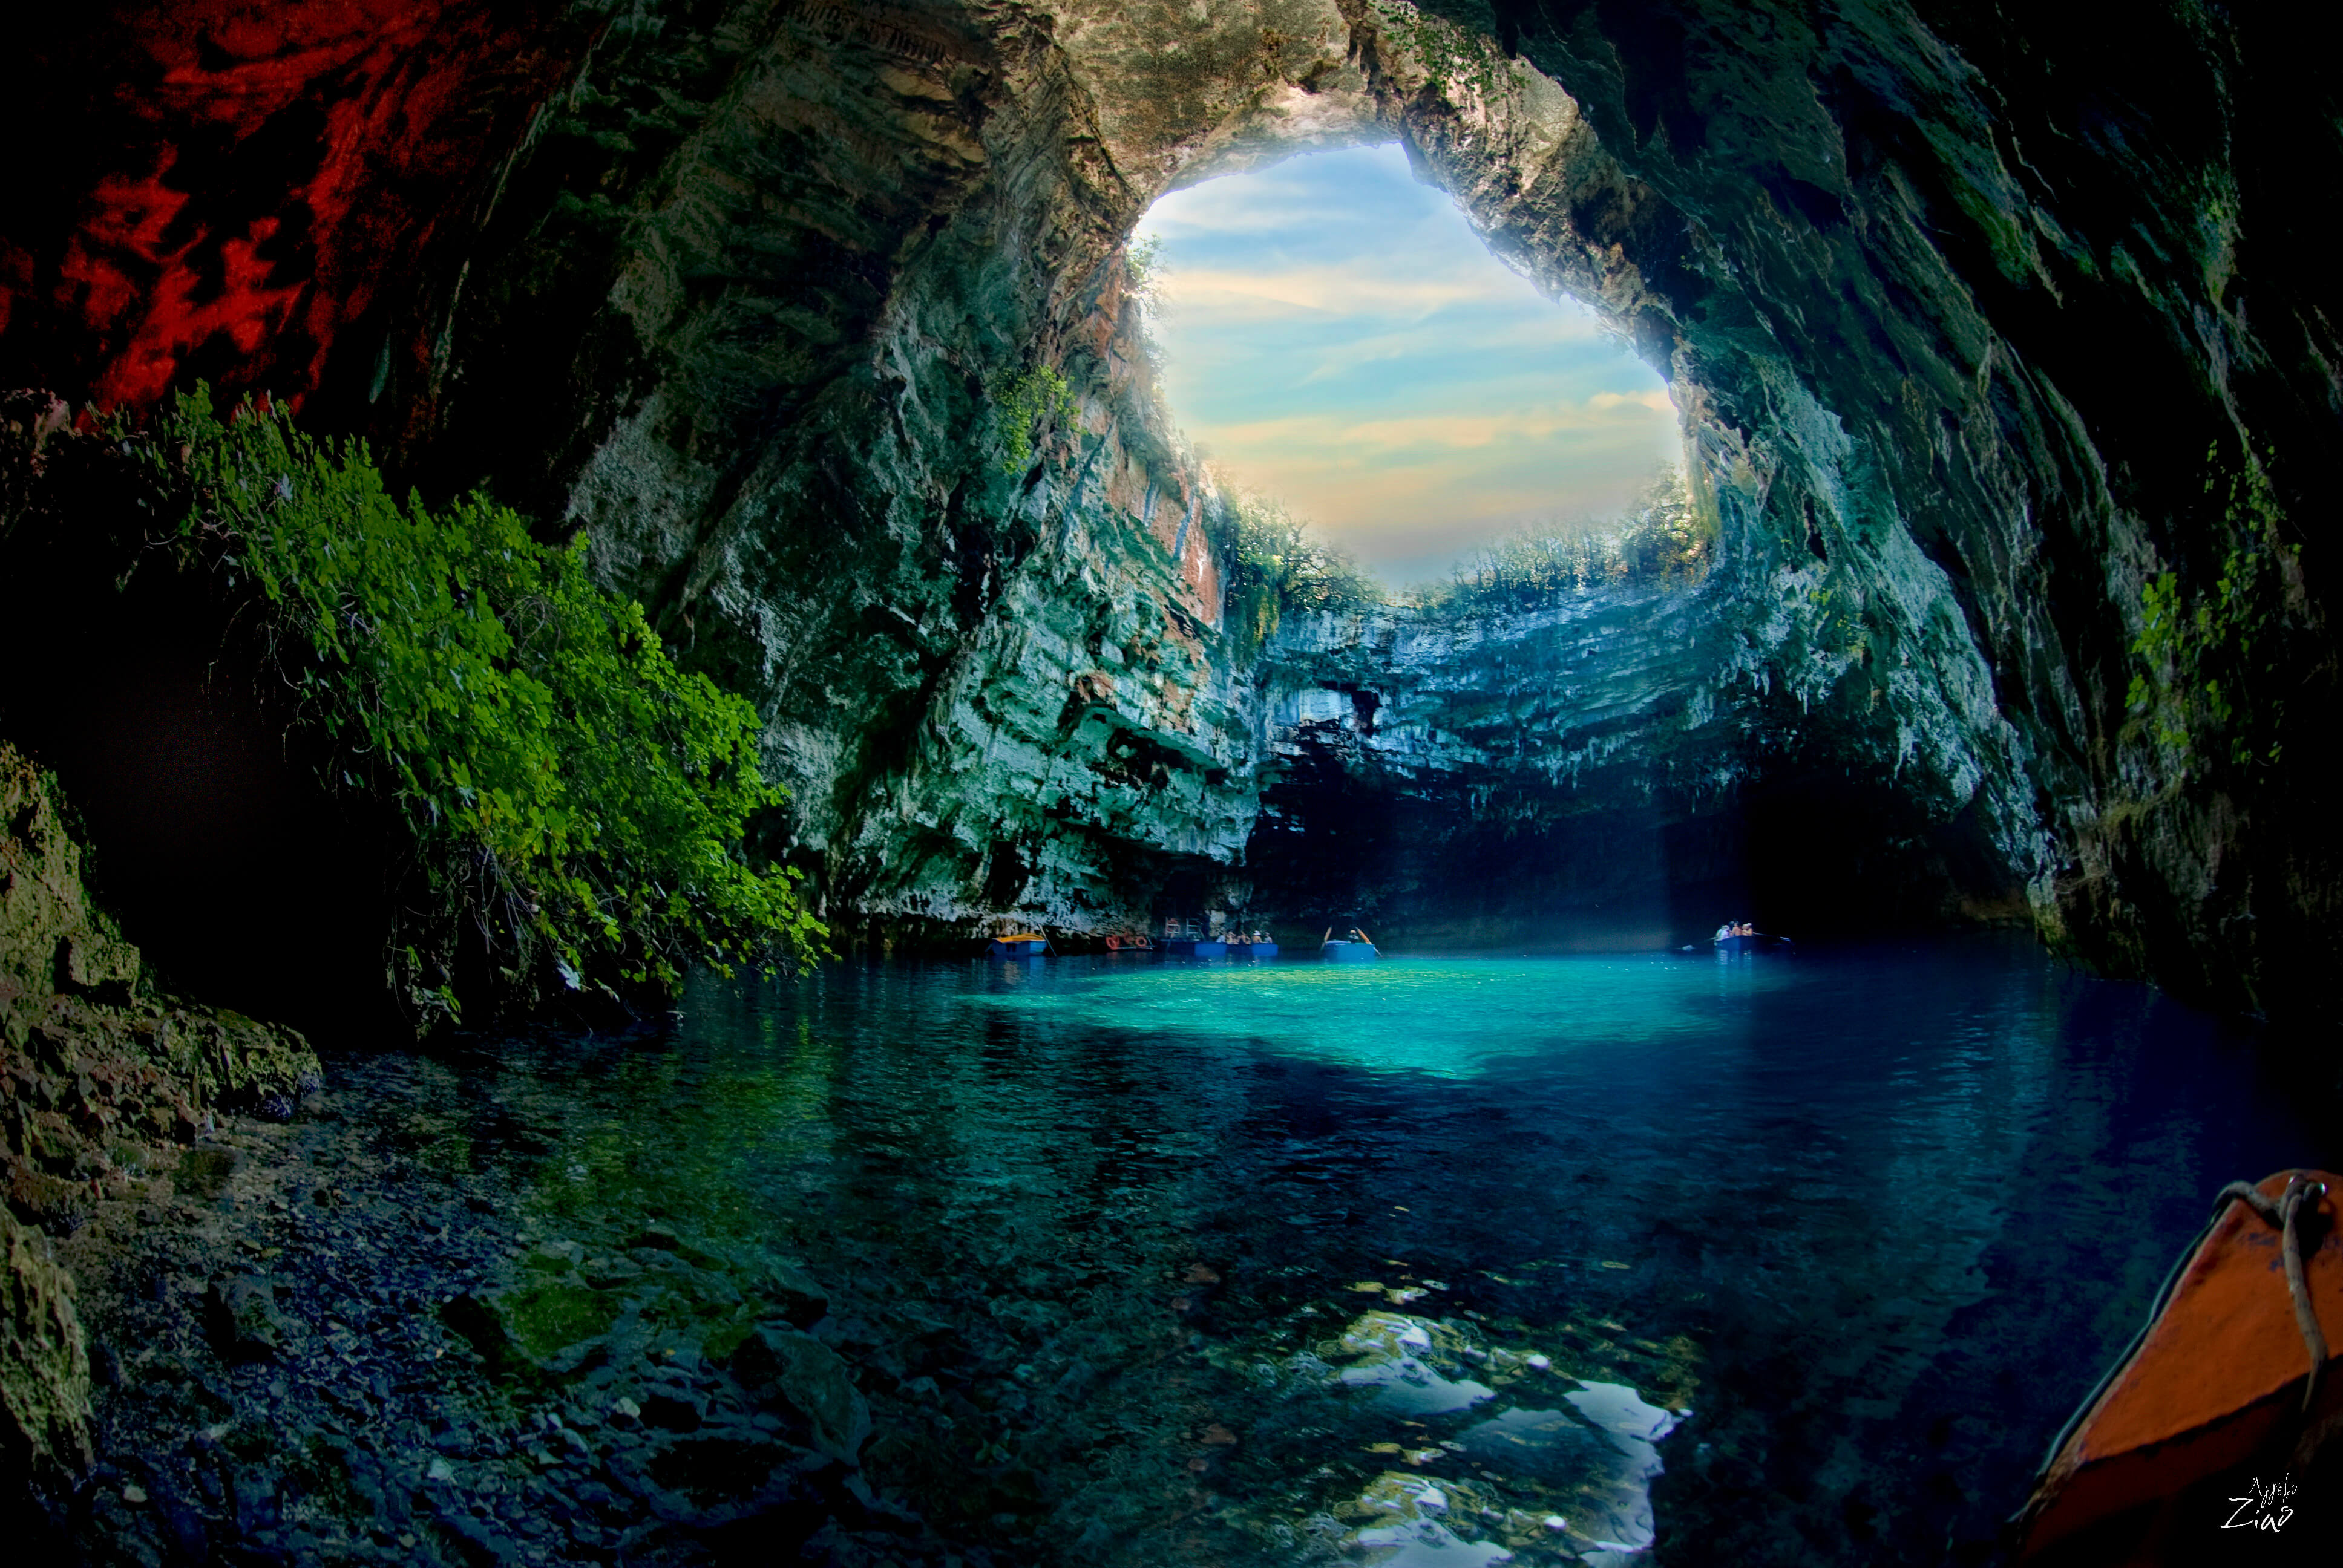 Have You Ever Heard About Water Caves?